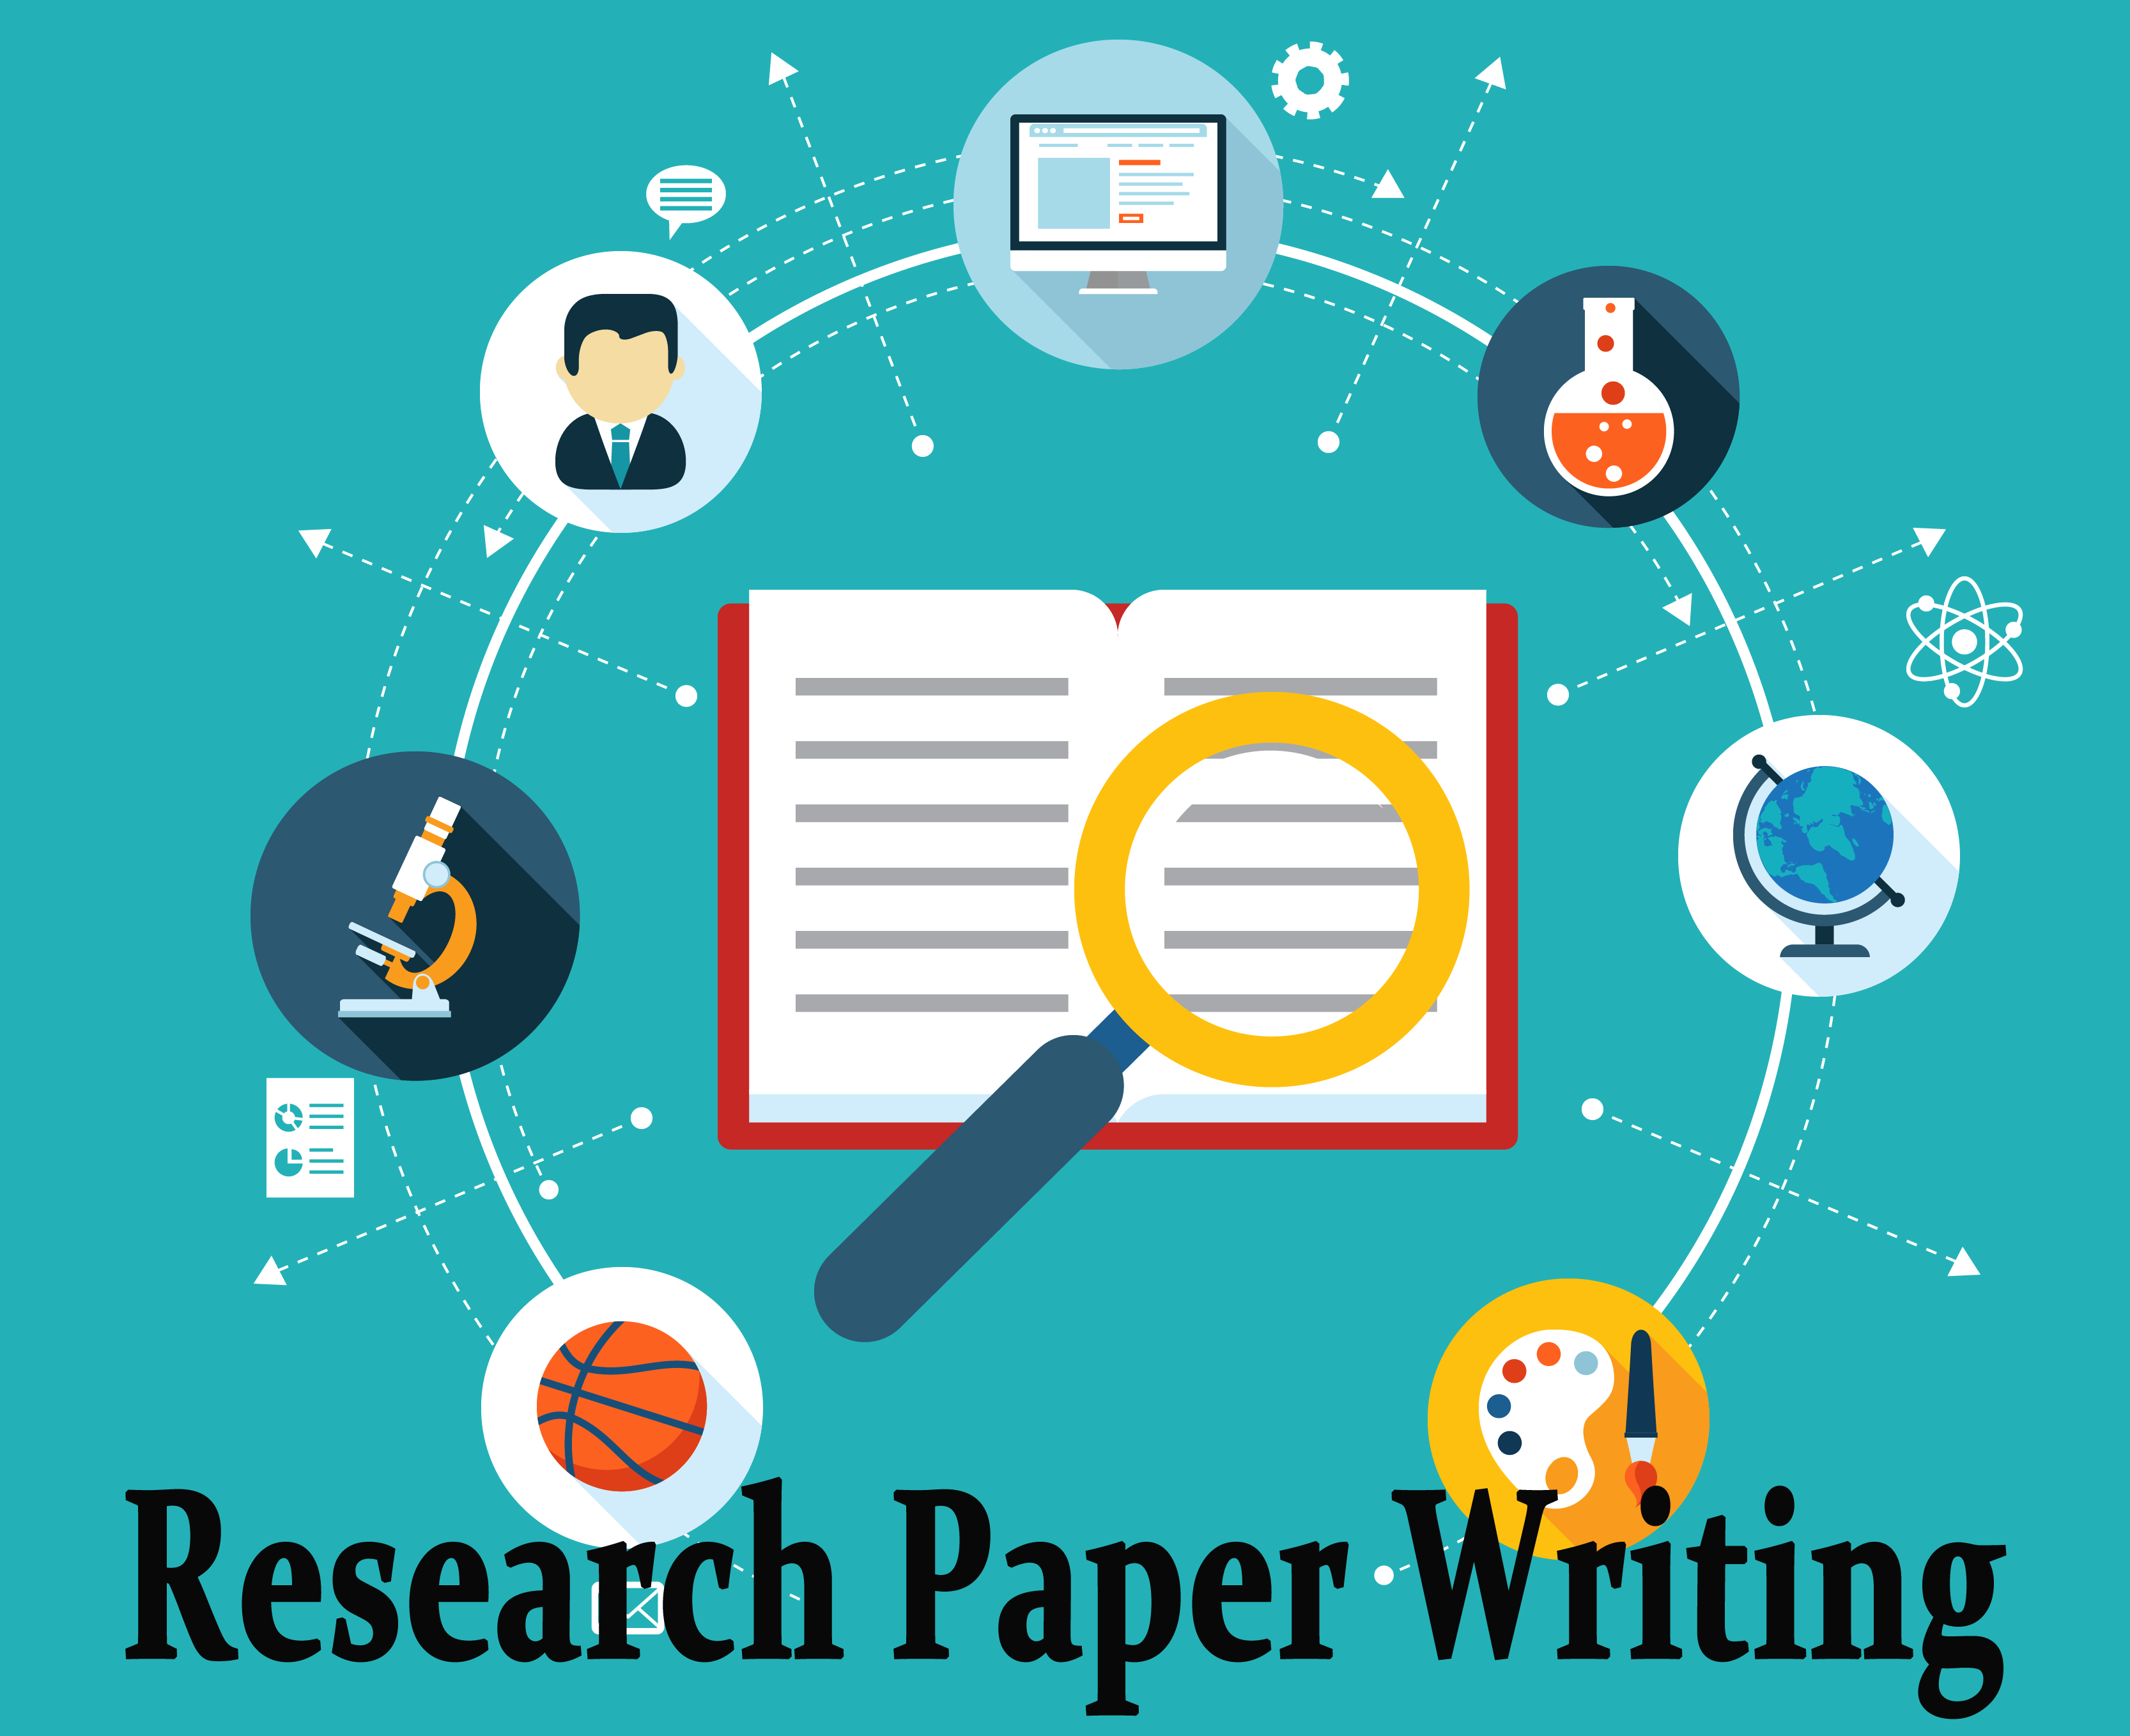 001 Help Writing Research Papers Paper 503 Effective Outstanding My Full